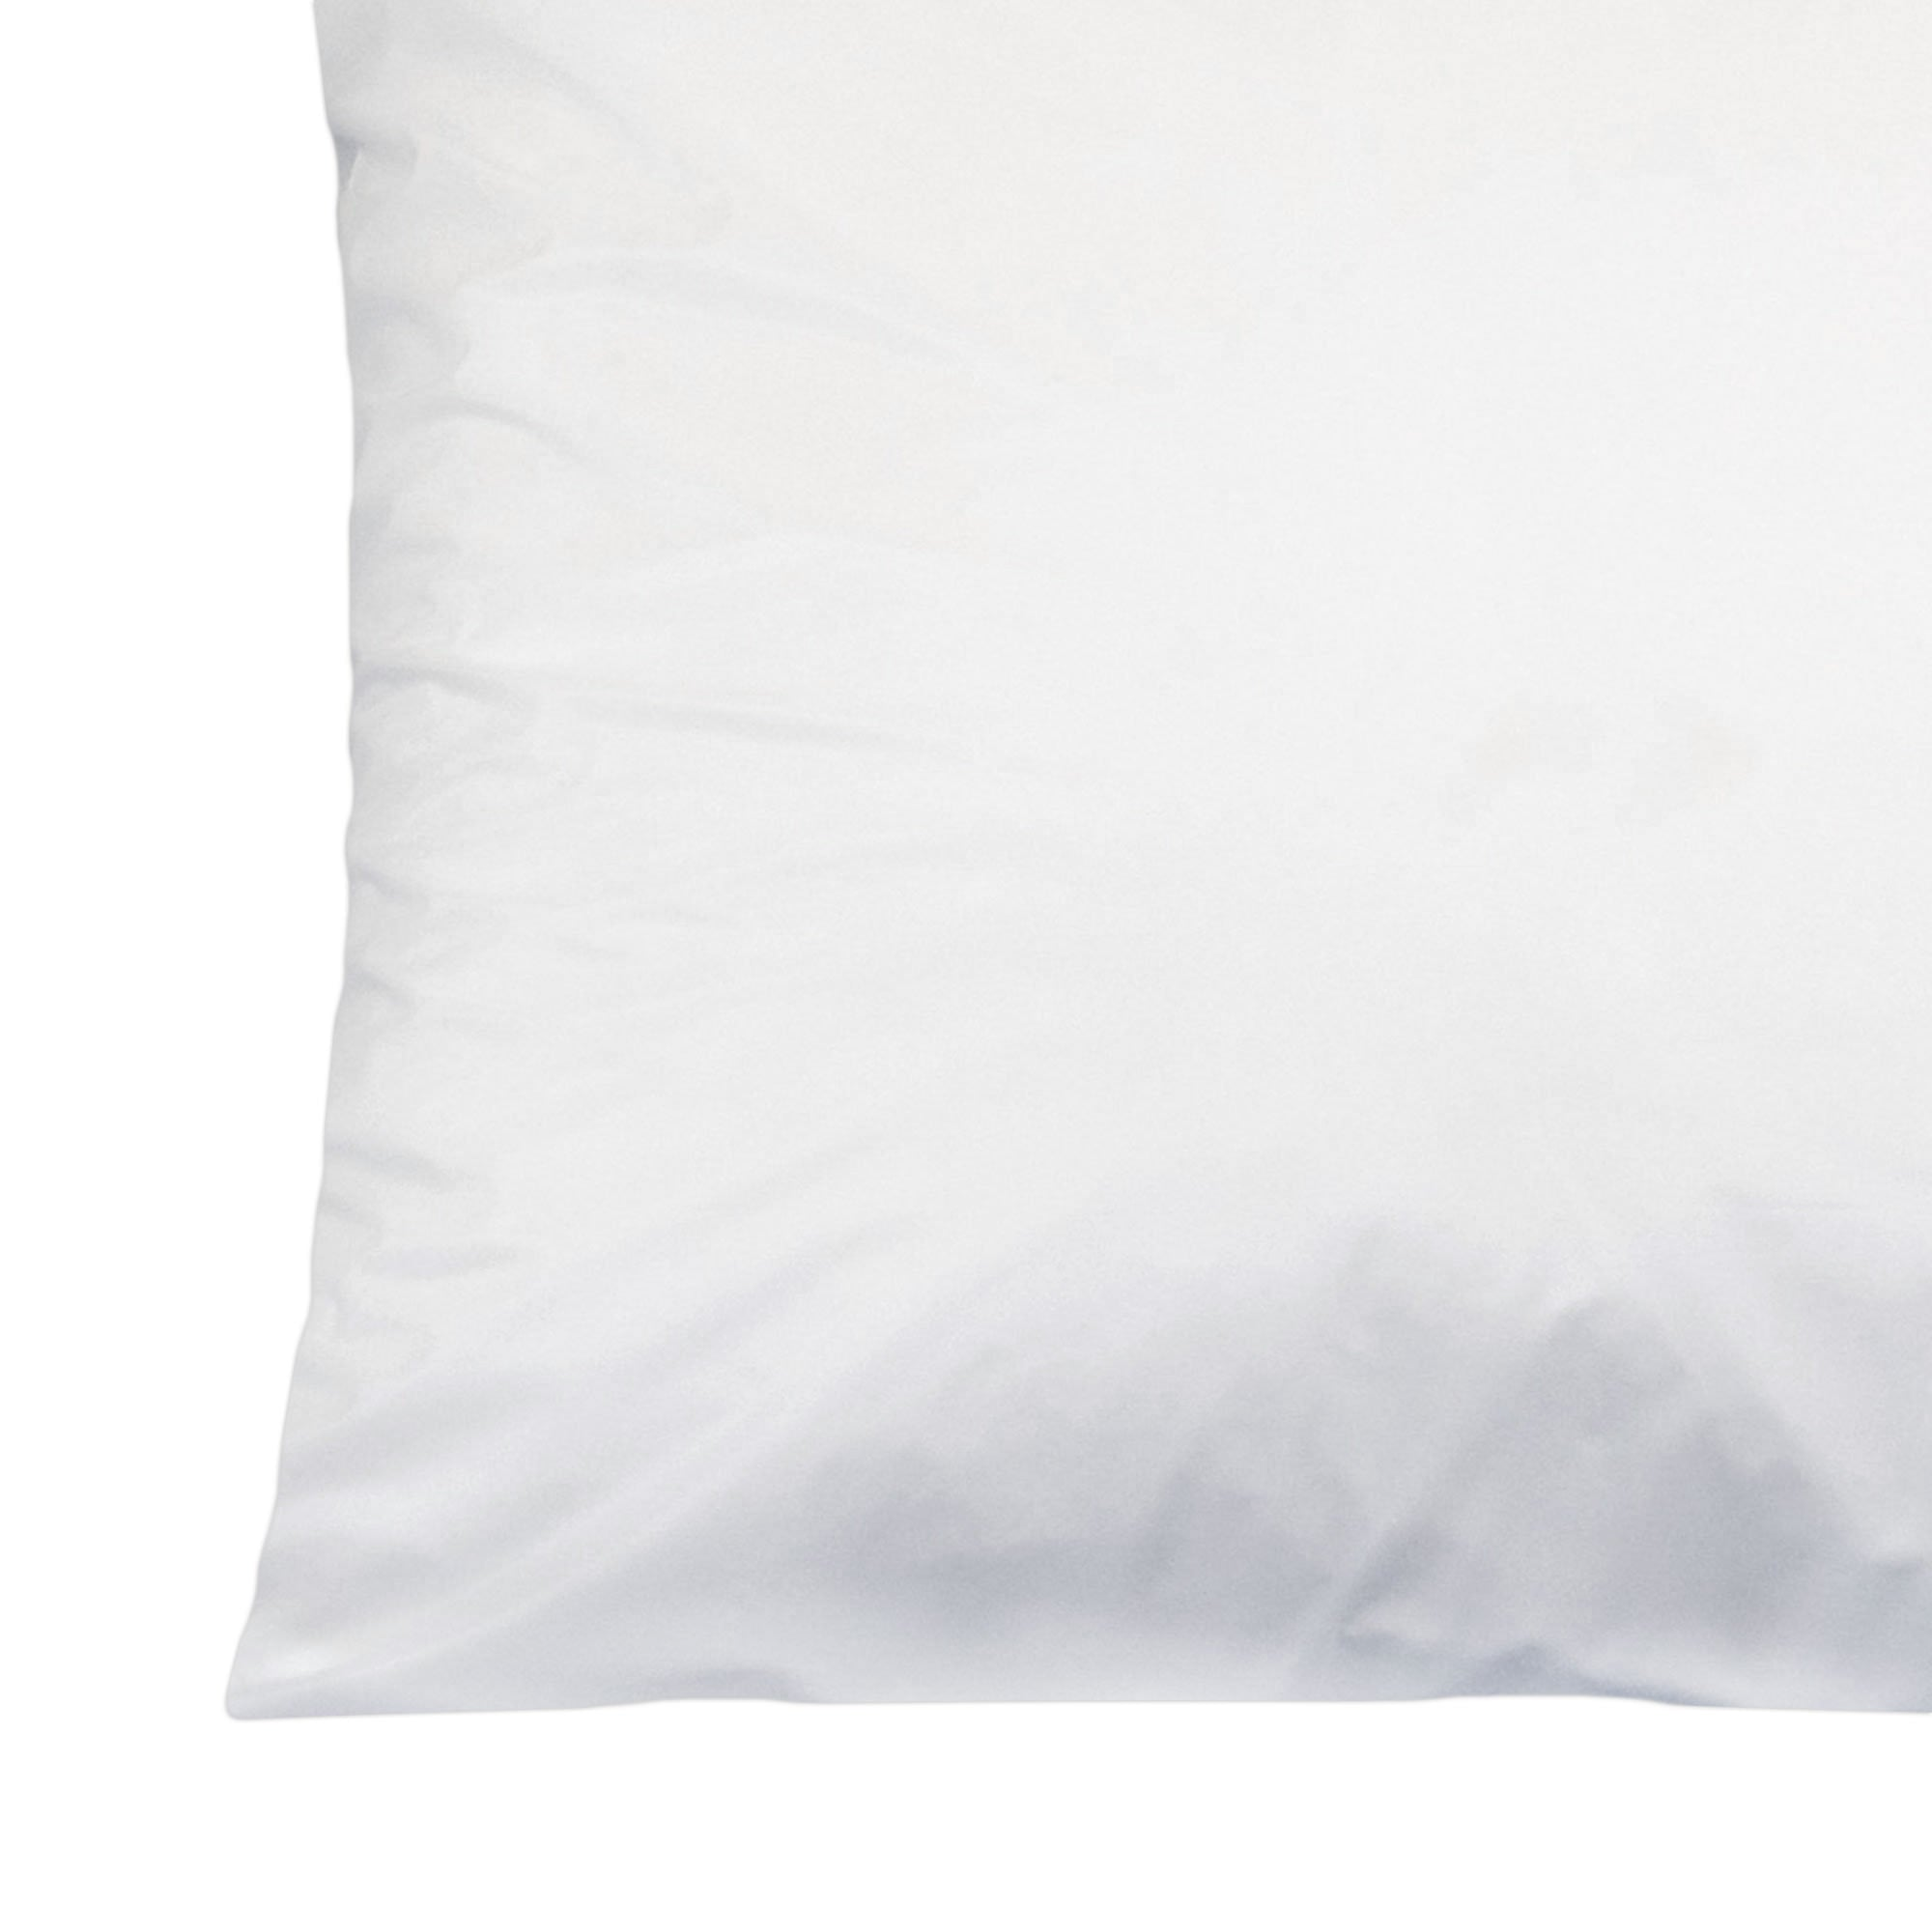 Bedding-Vinyl Zippered Waterproof Pillow Cover